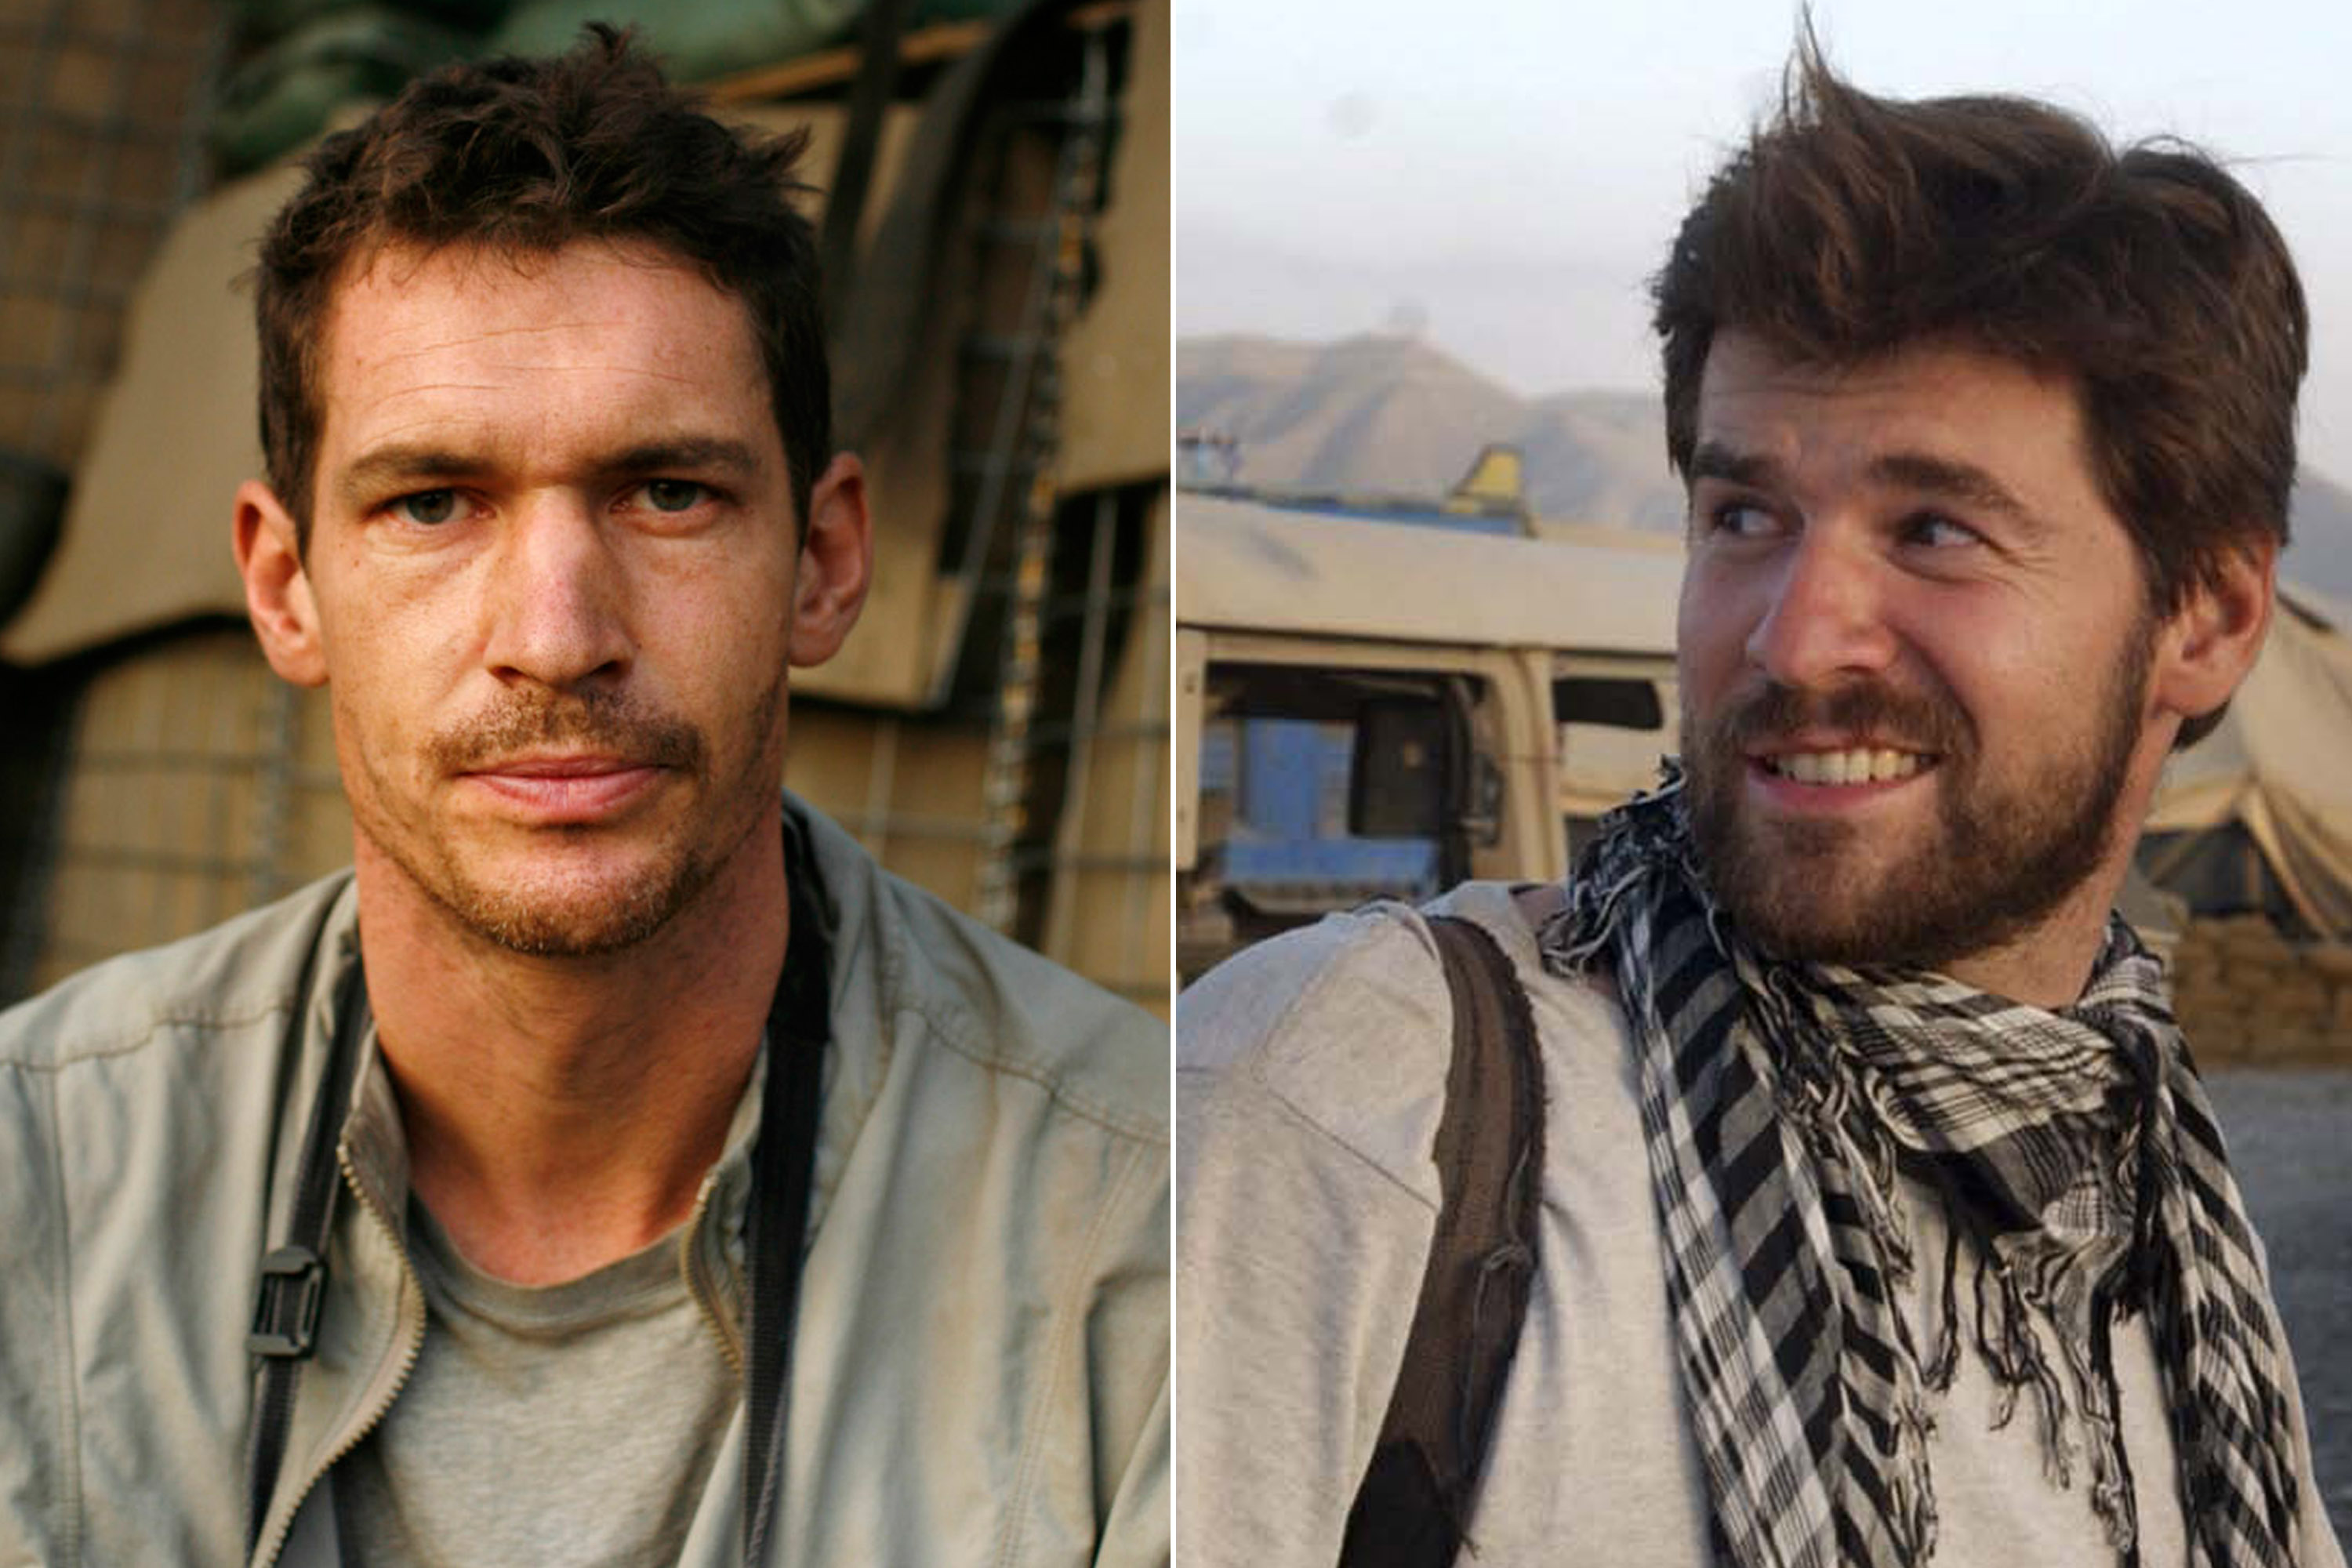 Tim Hetherington (L) and Chris Hondros (R)